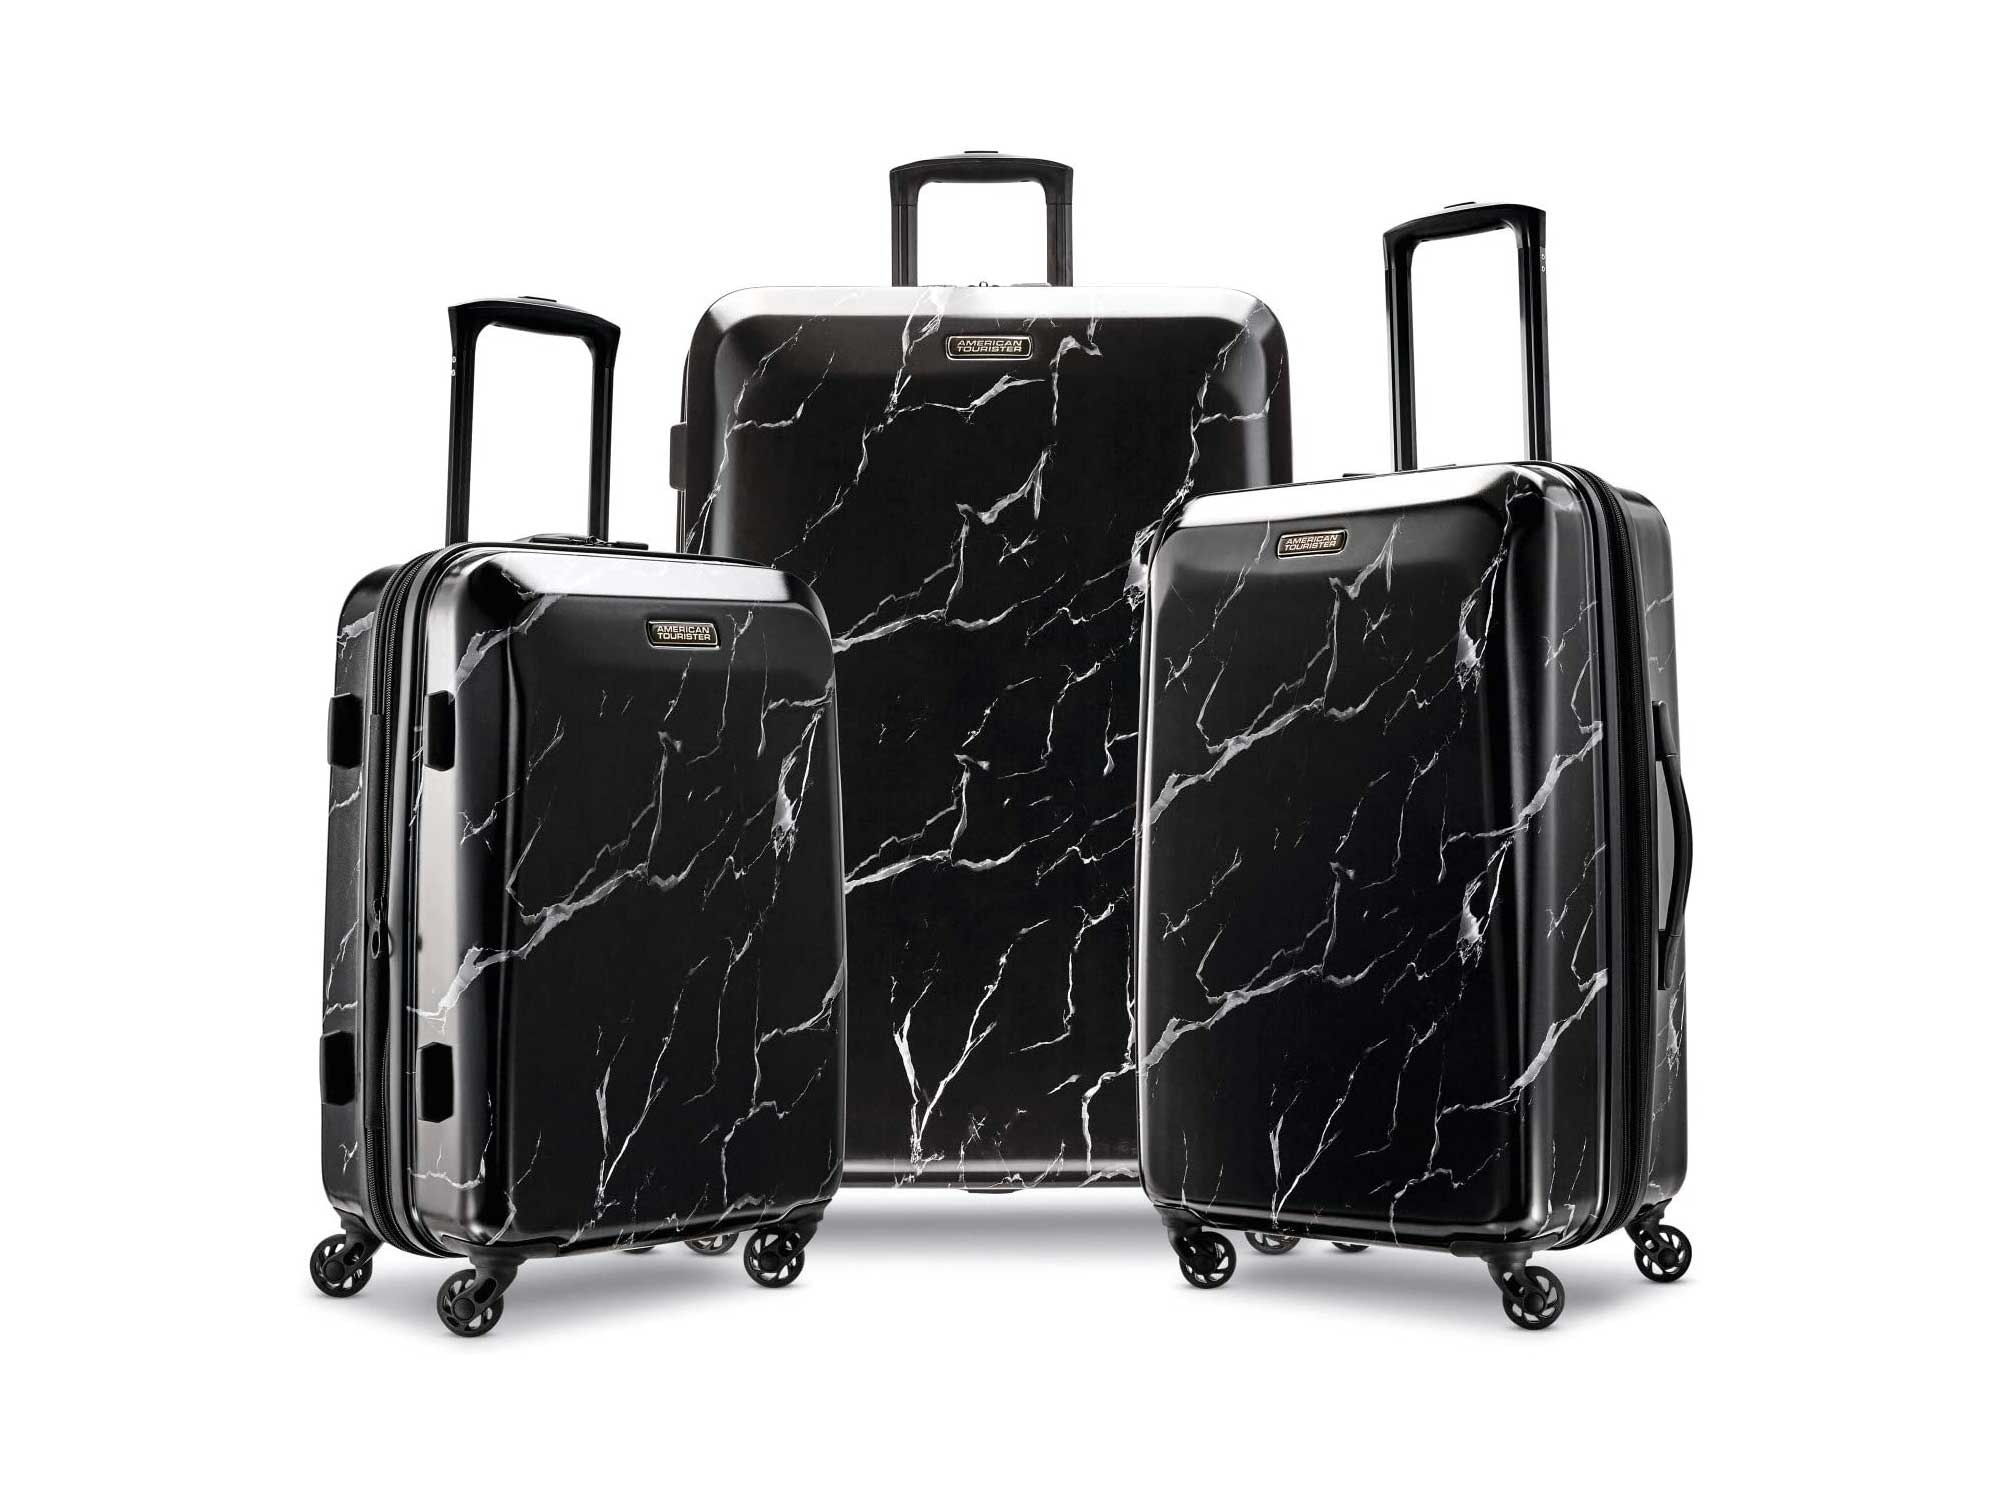 American Tourister Moonlight Hardside Expandable Luggage with Spinner Wheels, Black Marble, 3-Piece Set